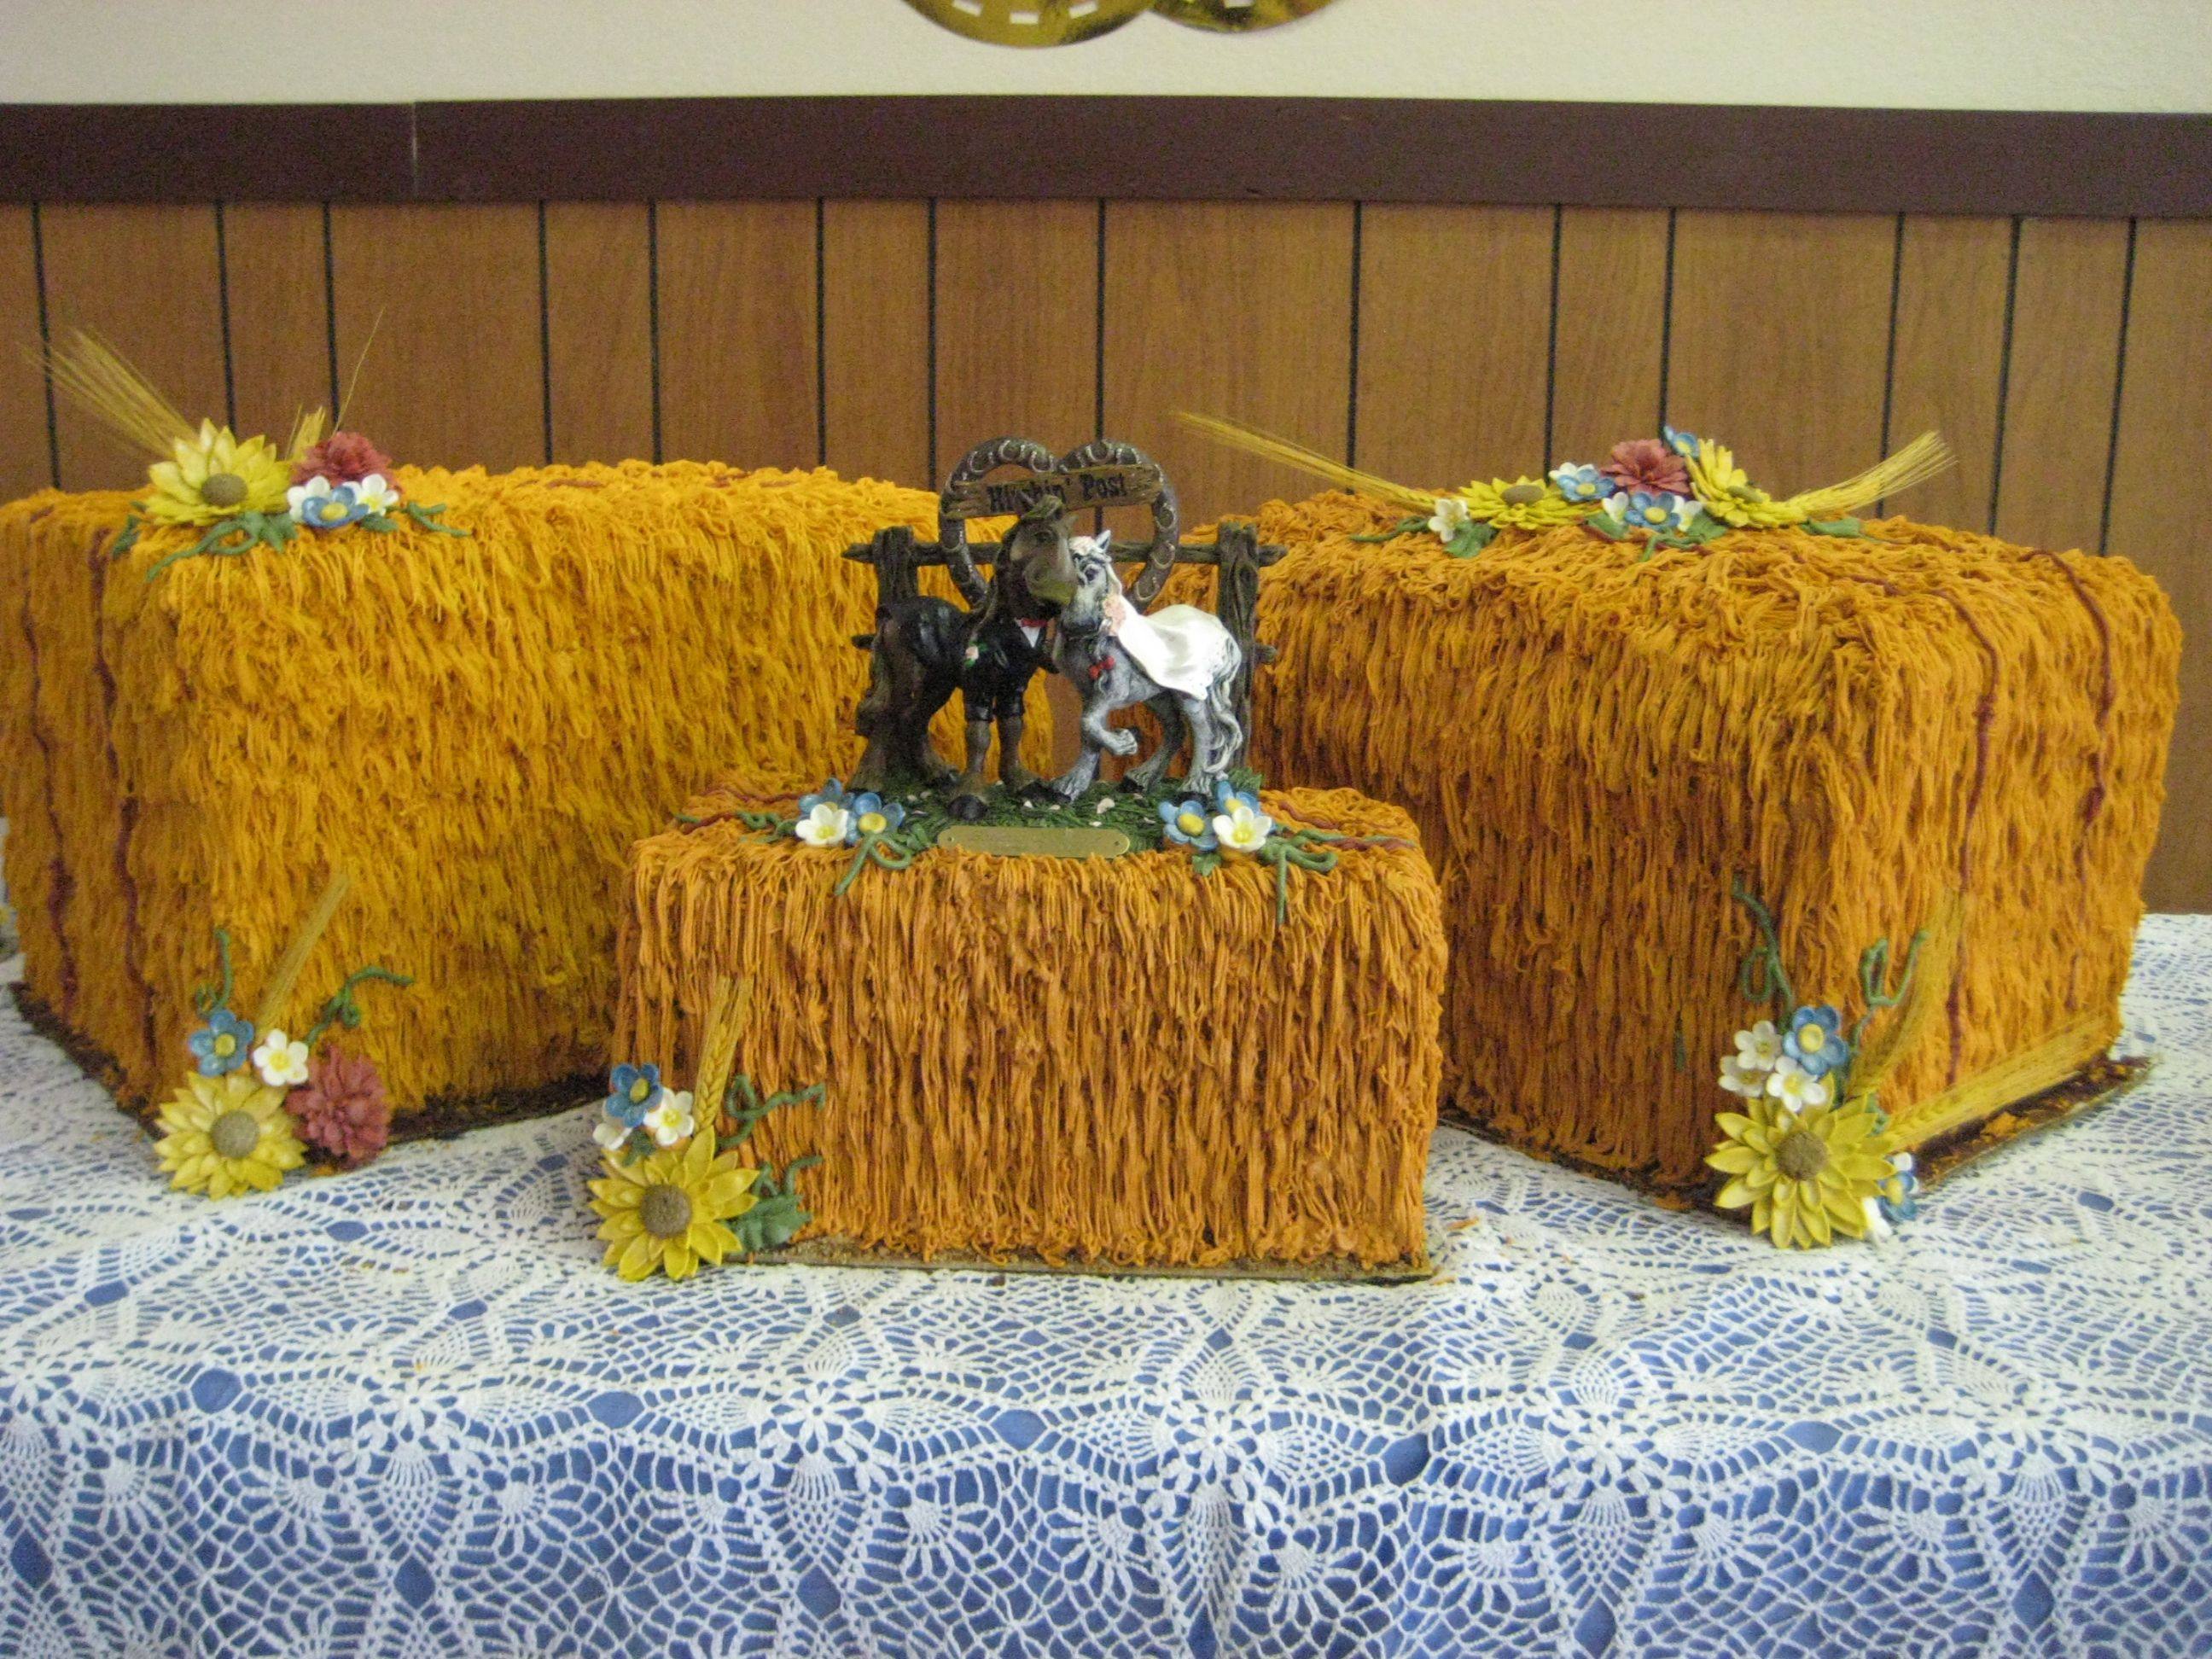 Hay Bale Wedding Cake -   cake is a double layer o.  Eacn top of a block of styrofoam in order to get the correct dimensions.  The flowers are made from gum paste.